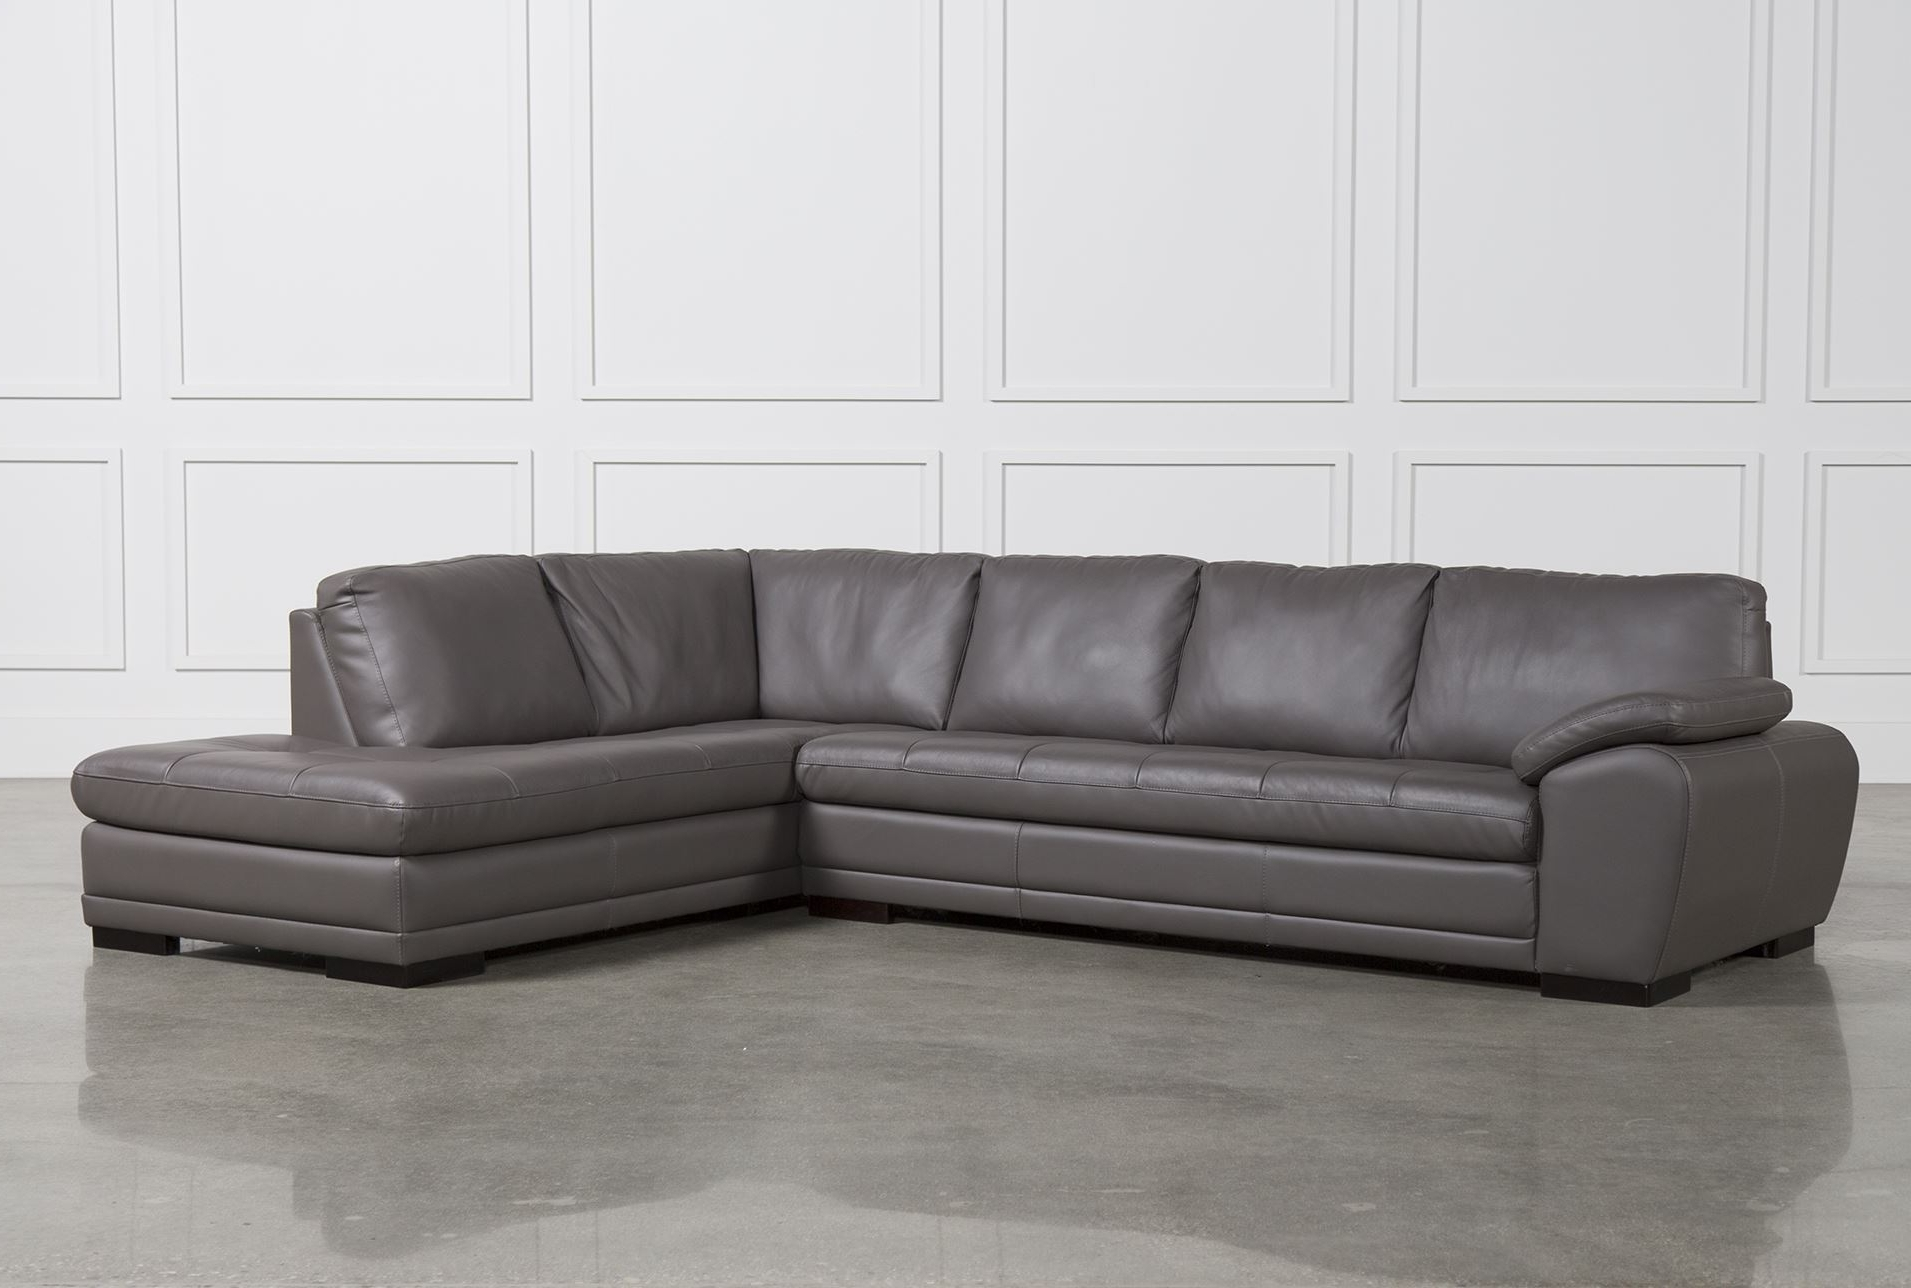 Popular Sectional Sofa Design: Unique Sectional Leather Sofas Gray Leather With Leather L Shaped Sectional Sofas (View 17 of 20)